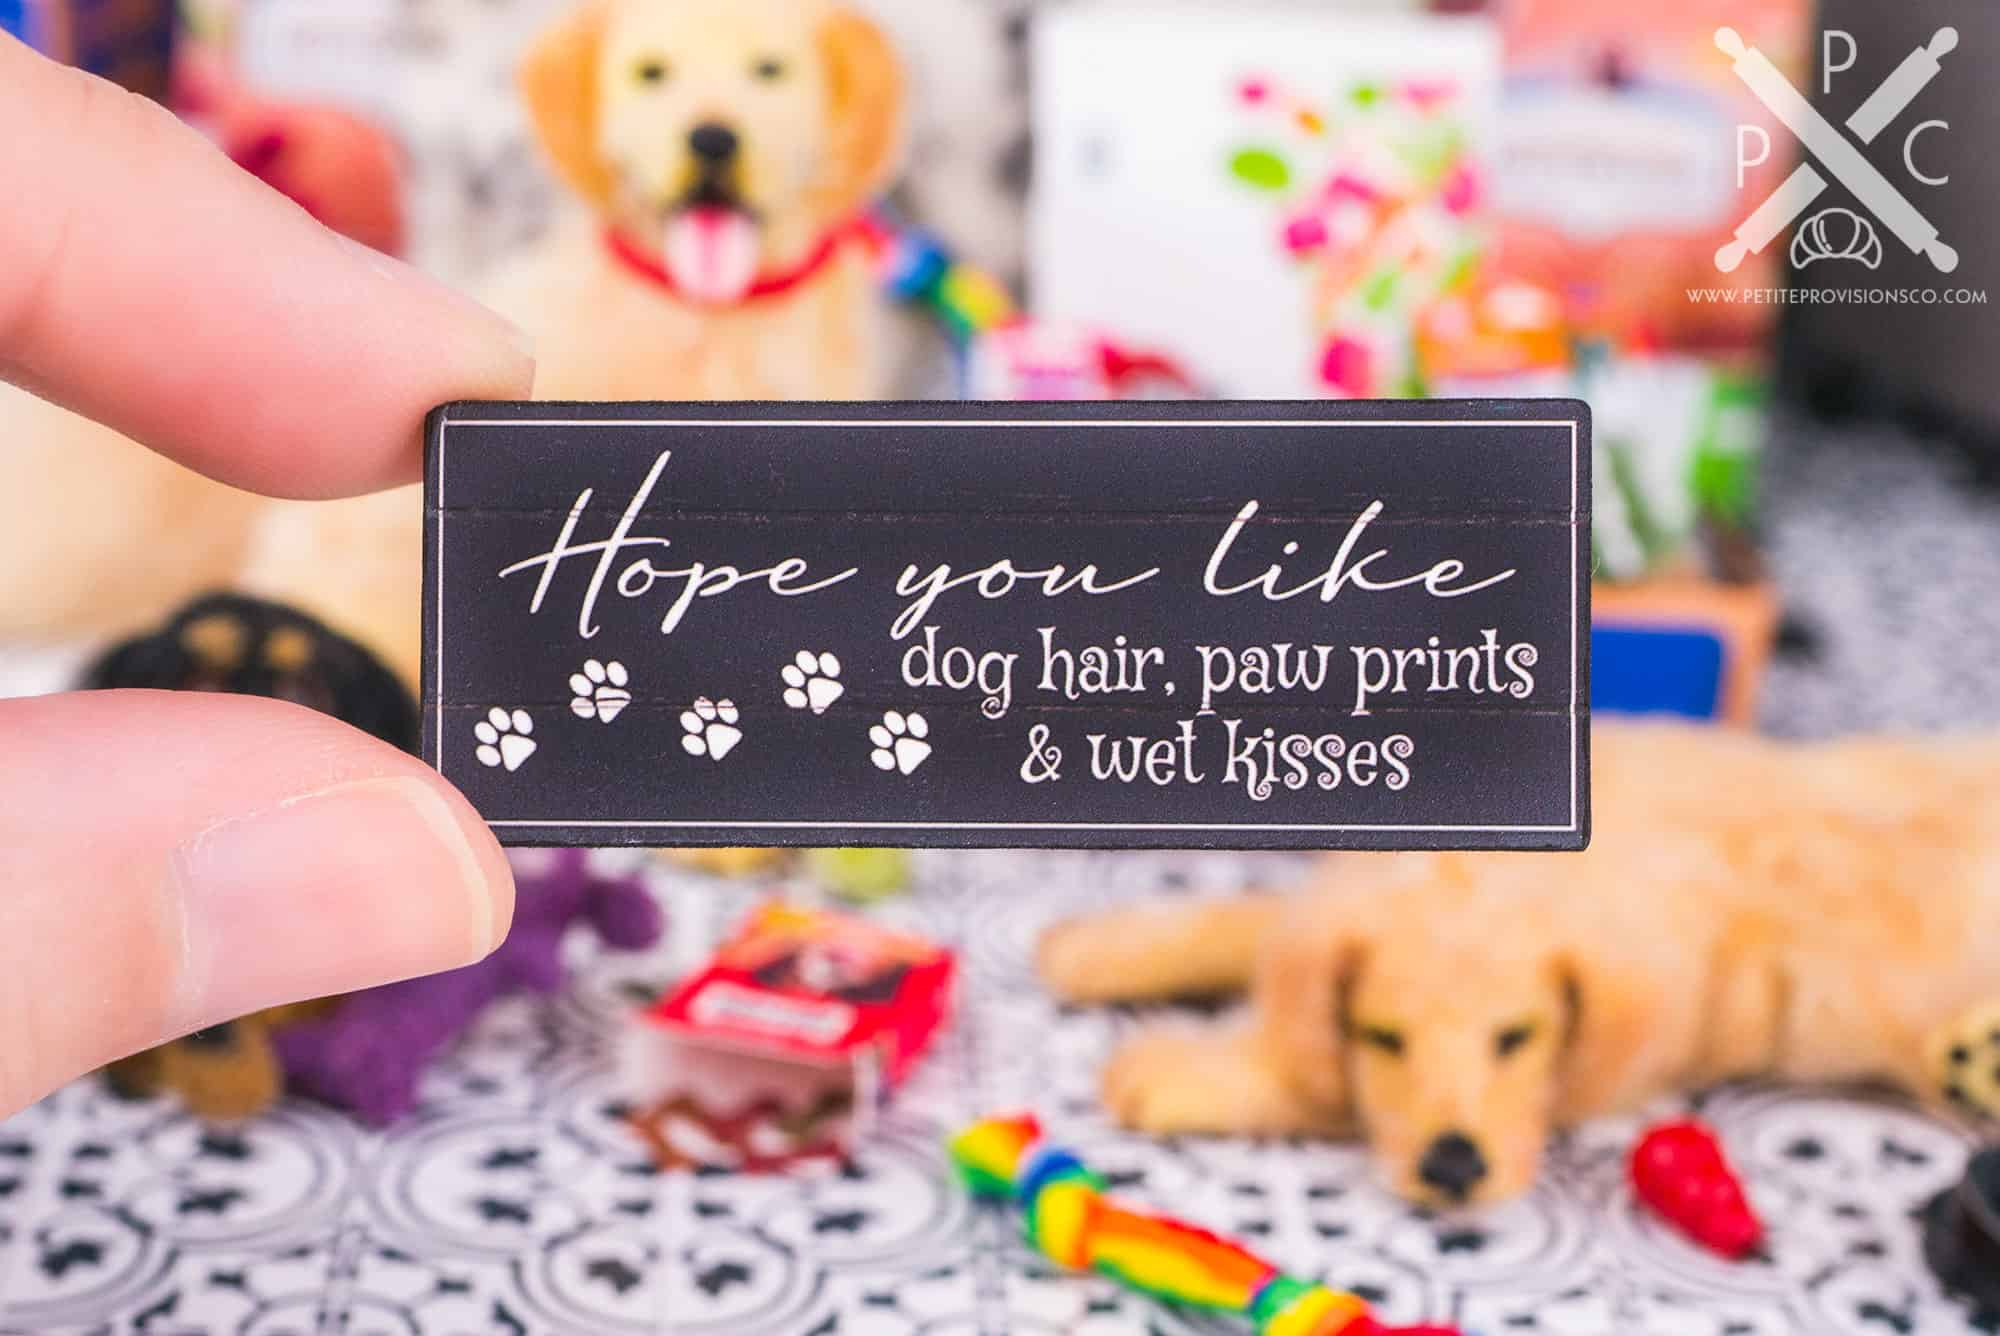 Handmade dollhouse miniature sign for dog lovers in a one inch scale scene by Erika Pitera, The Petite Provisions Co.